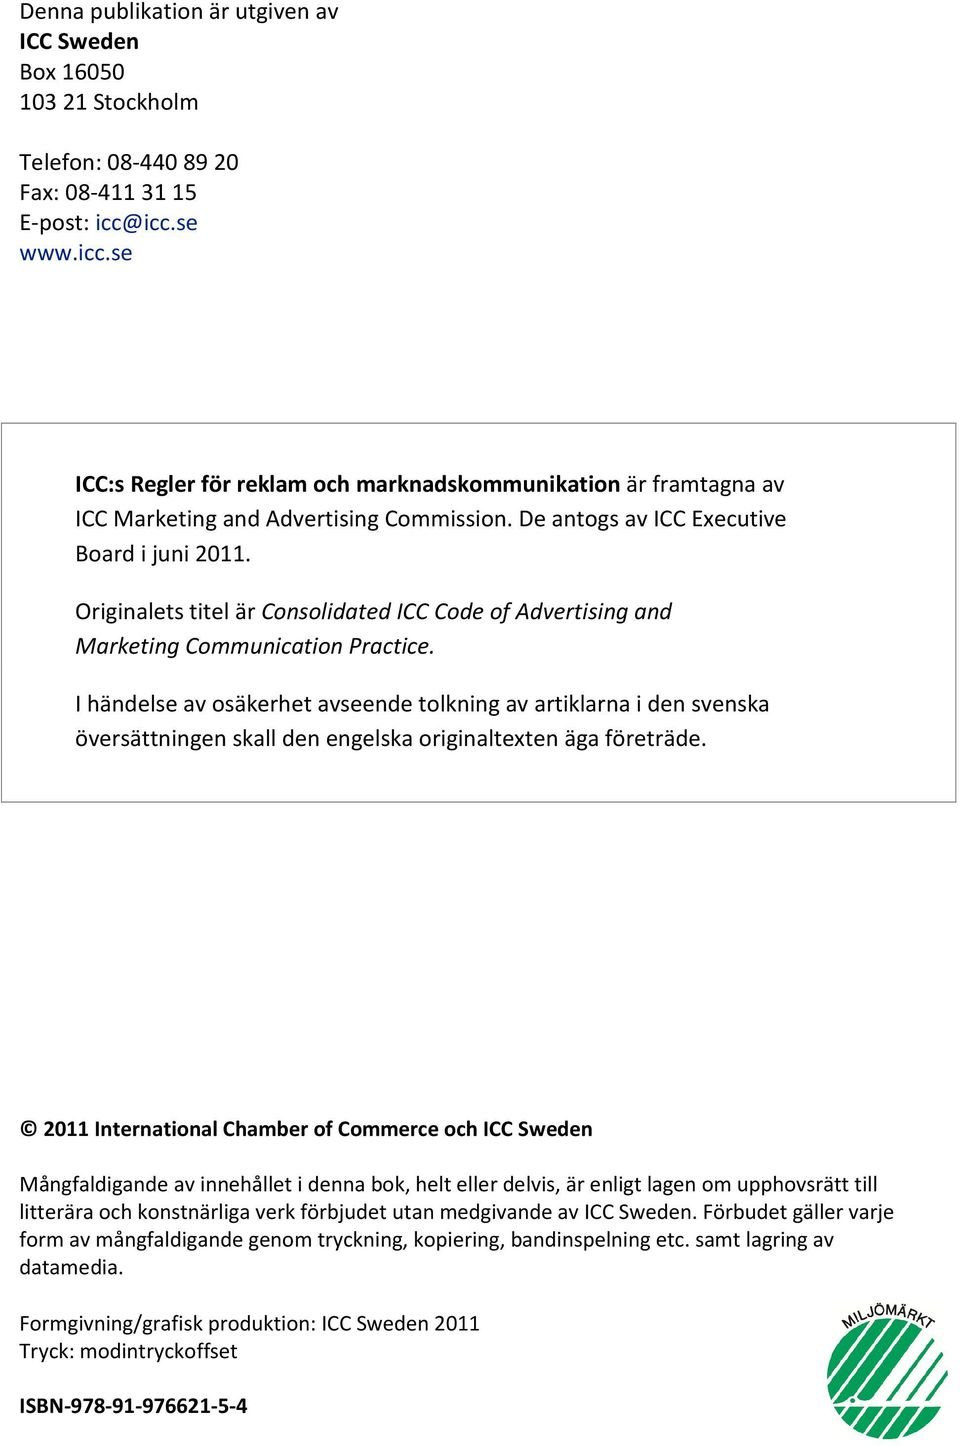 Originalets titel är Consolidated ICC Code of Advertising and Marketing Communication Practice.